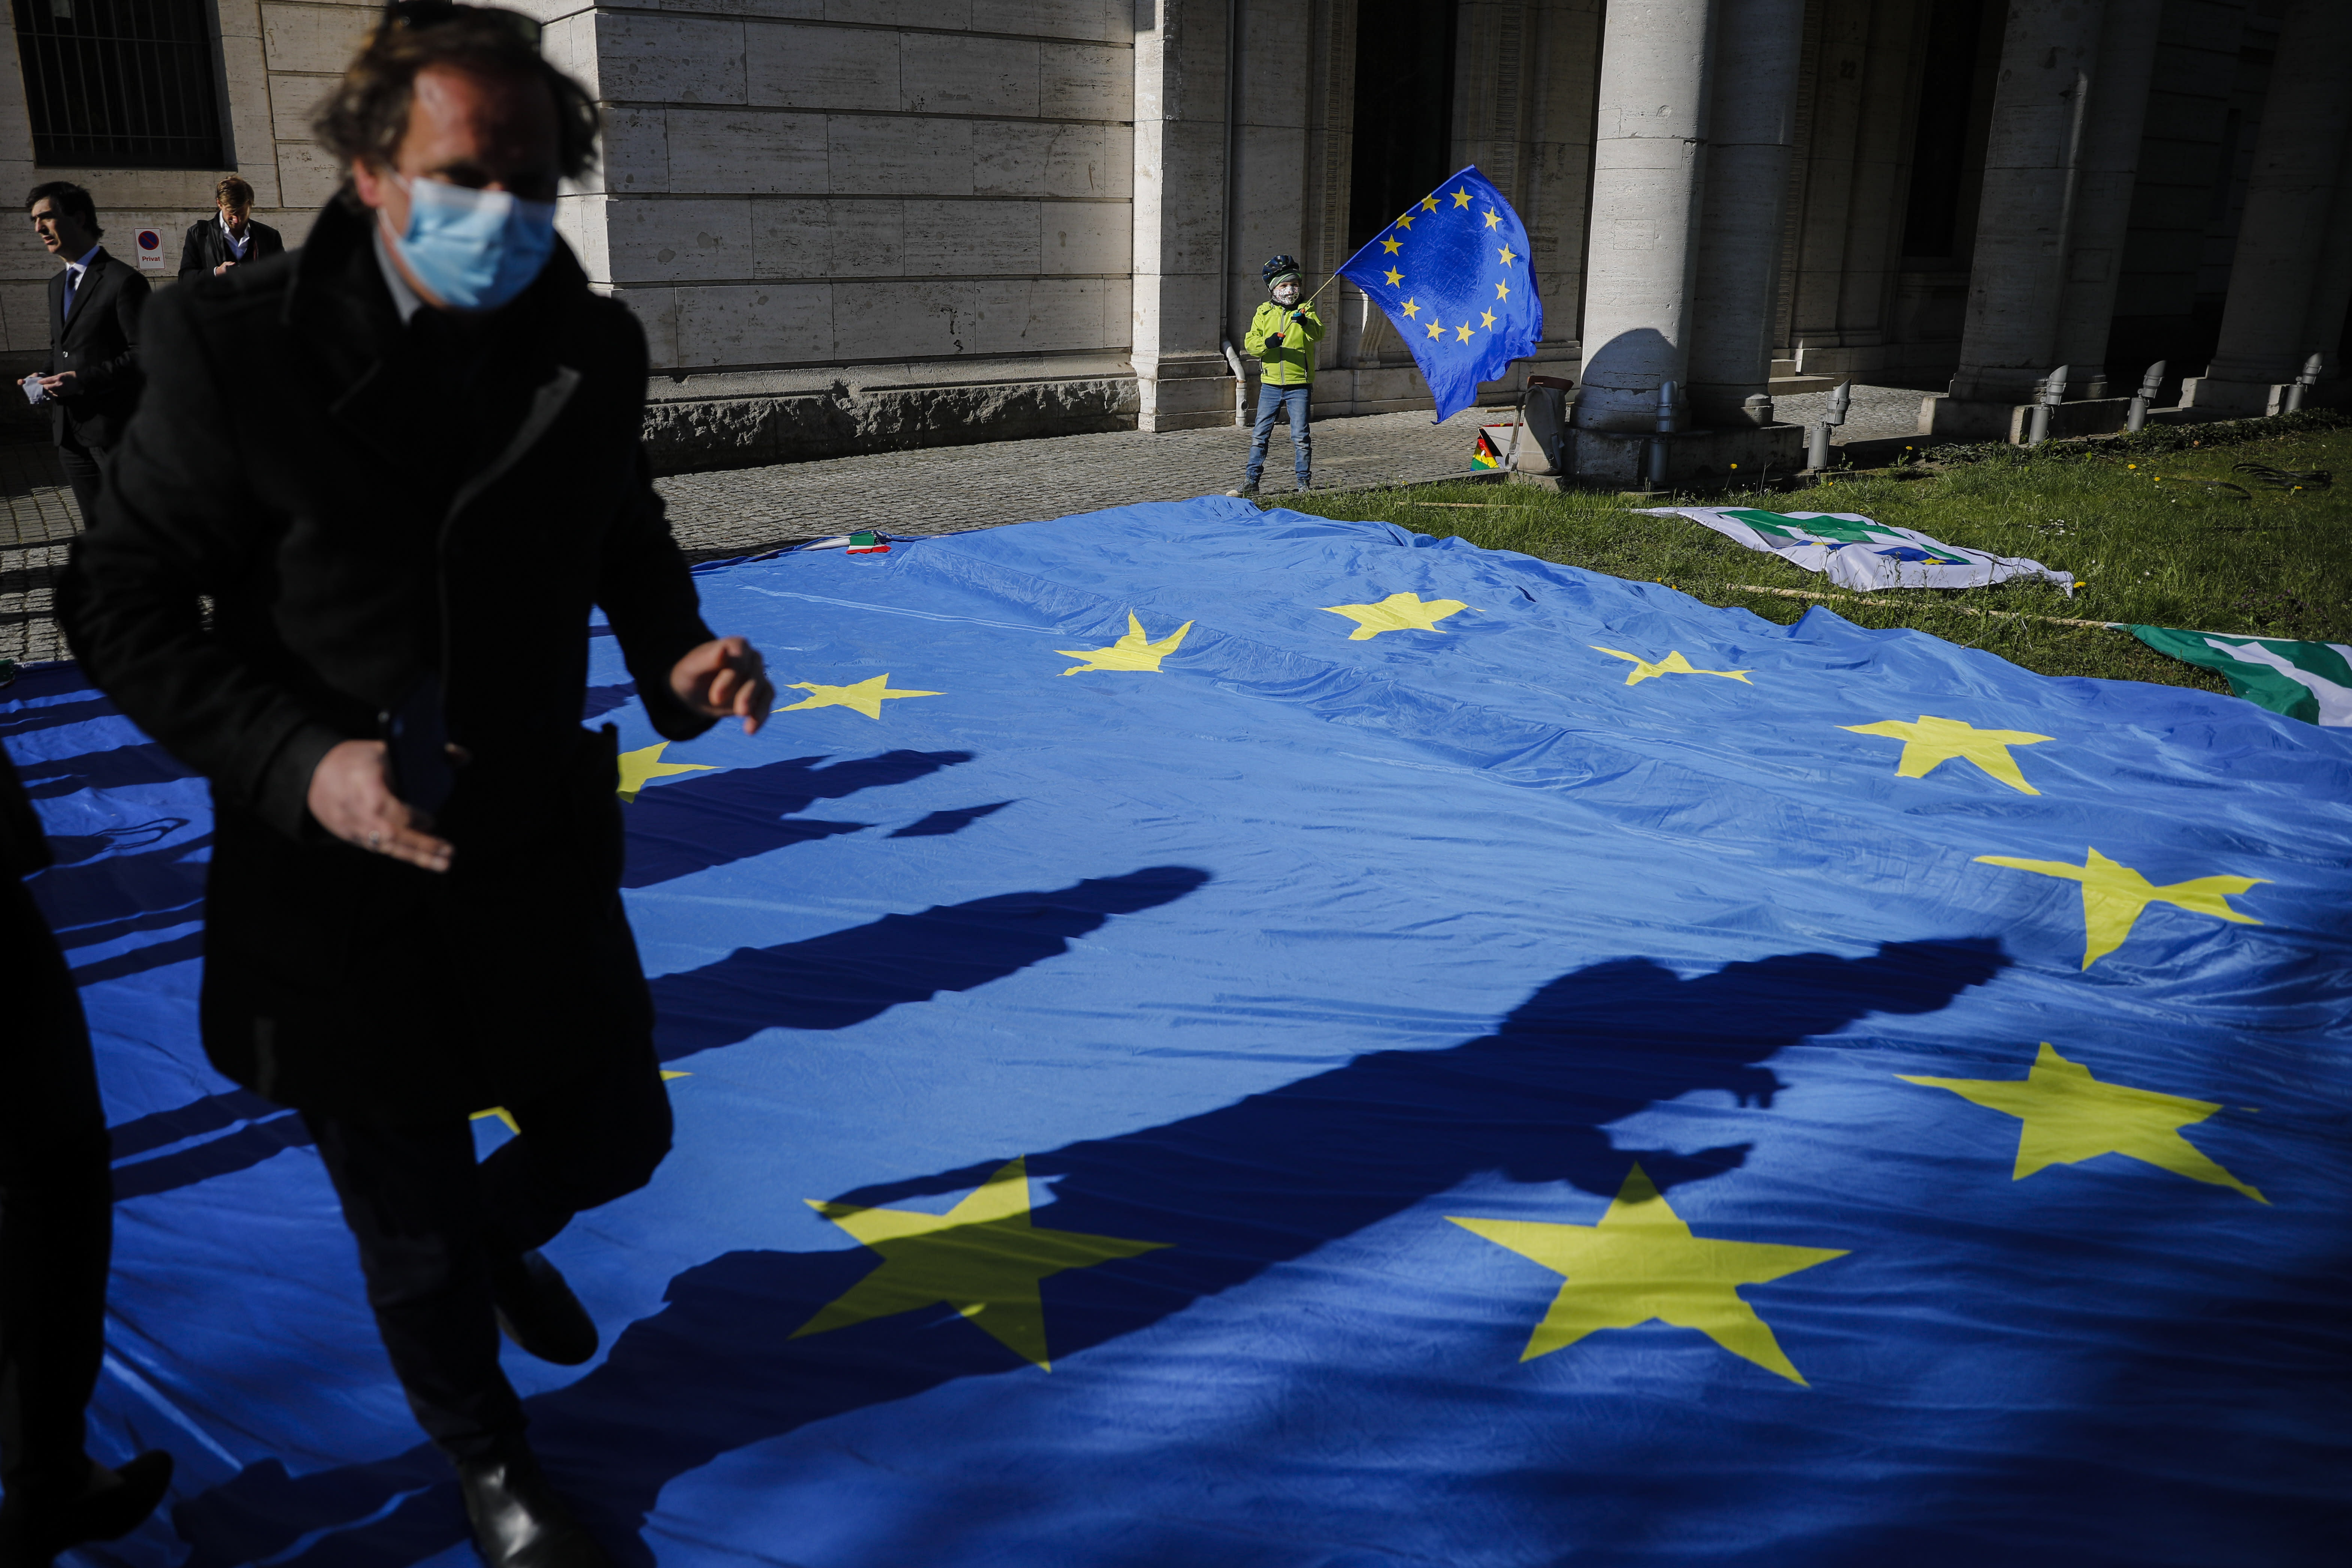 European Commission Chief: Many EU Countries Yet to Reach COVID-19 Peak